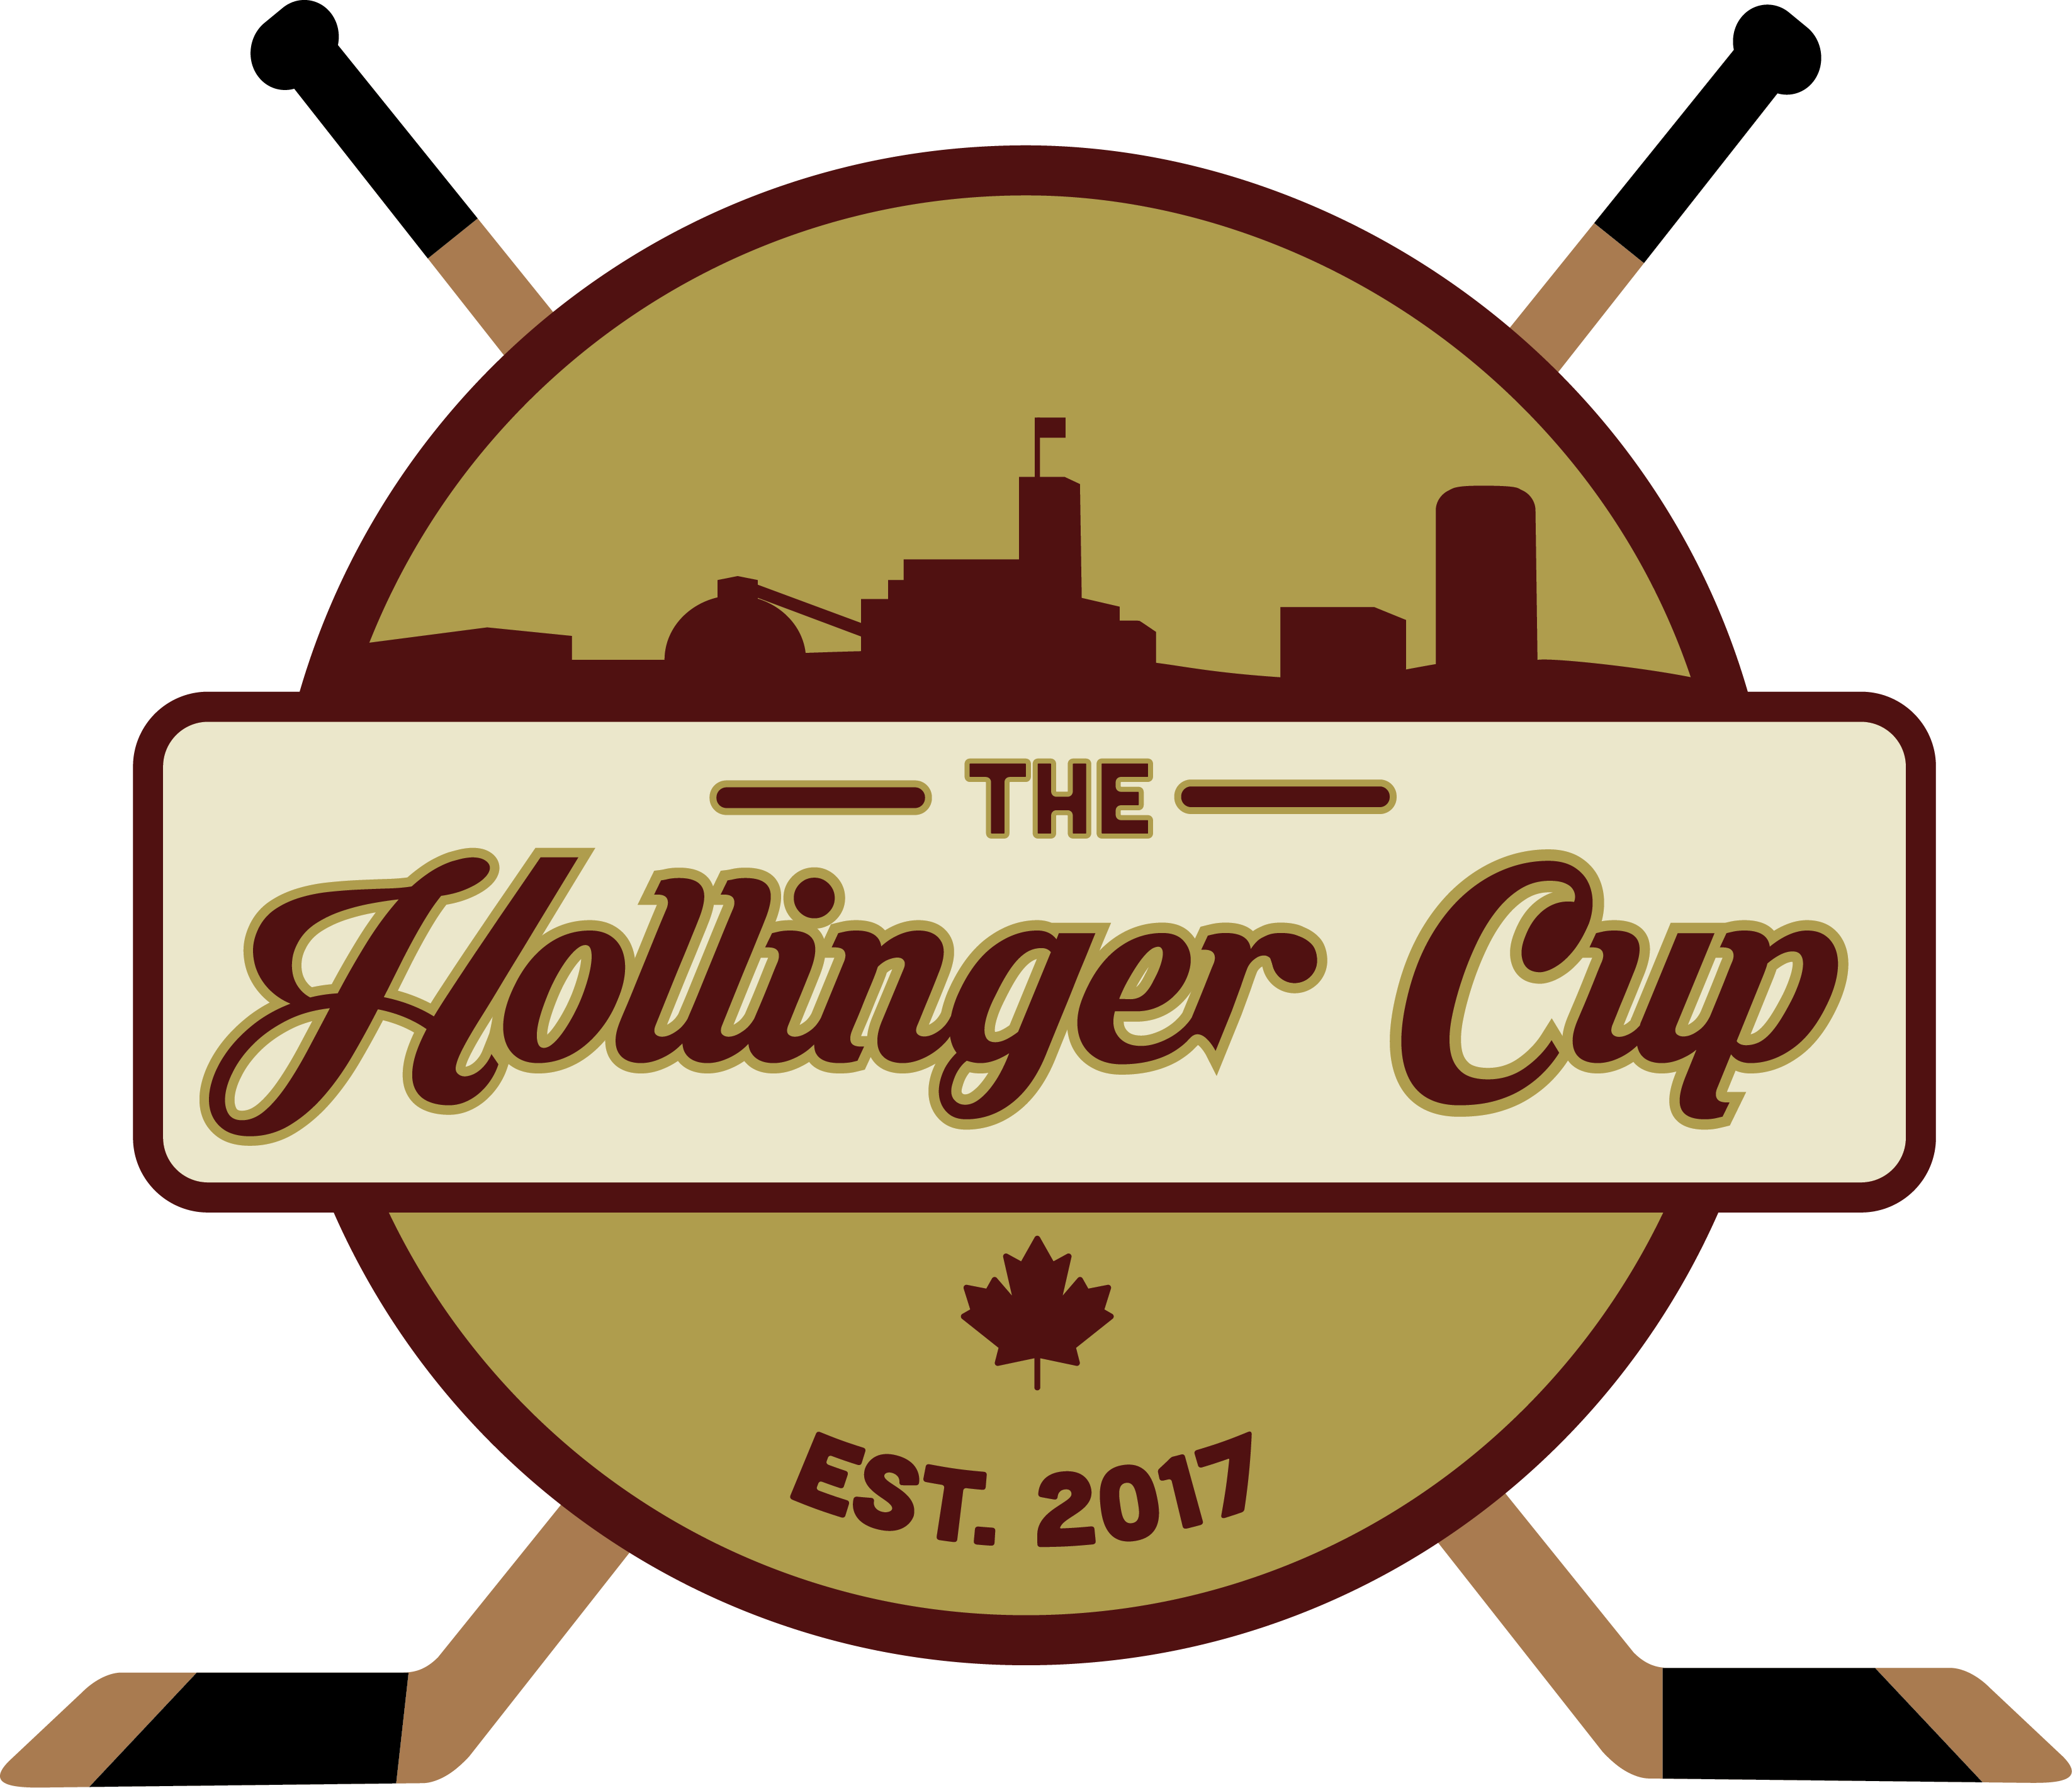 The hollinger cup pond. Hockey clipart hockey tournament